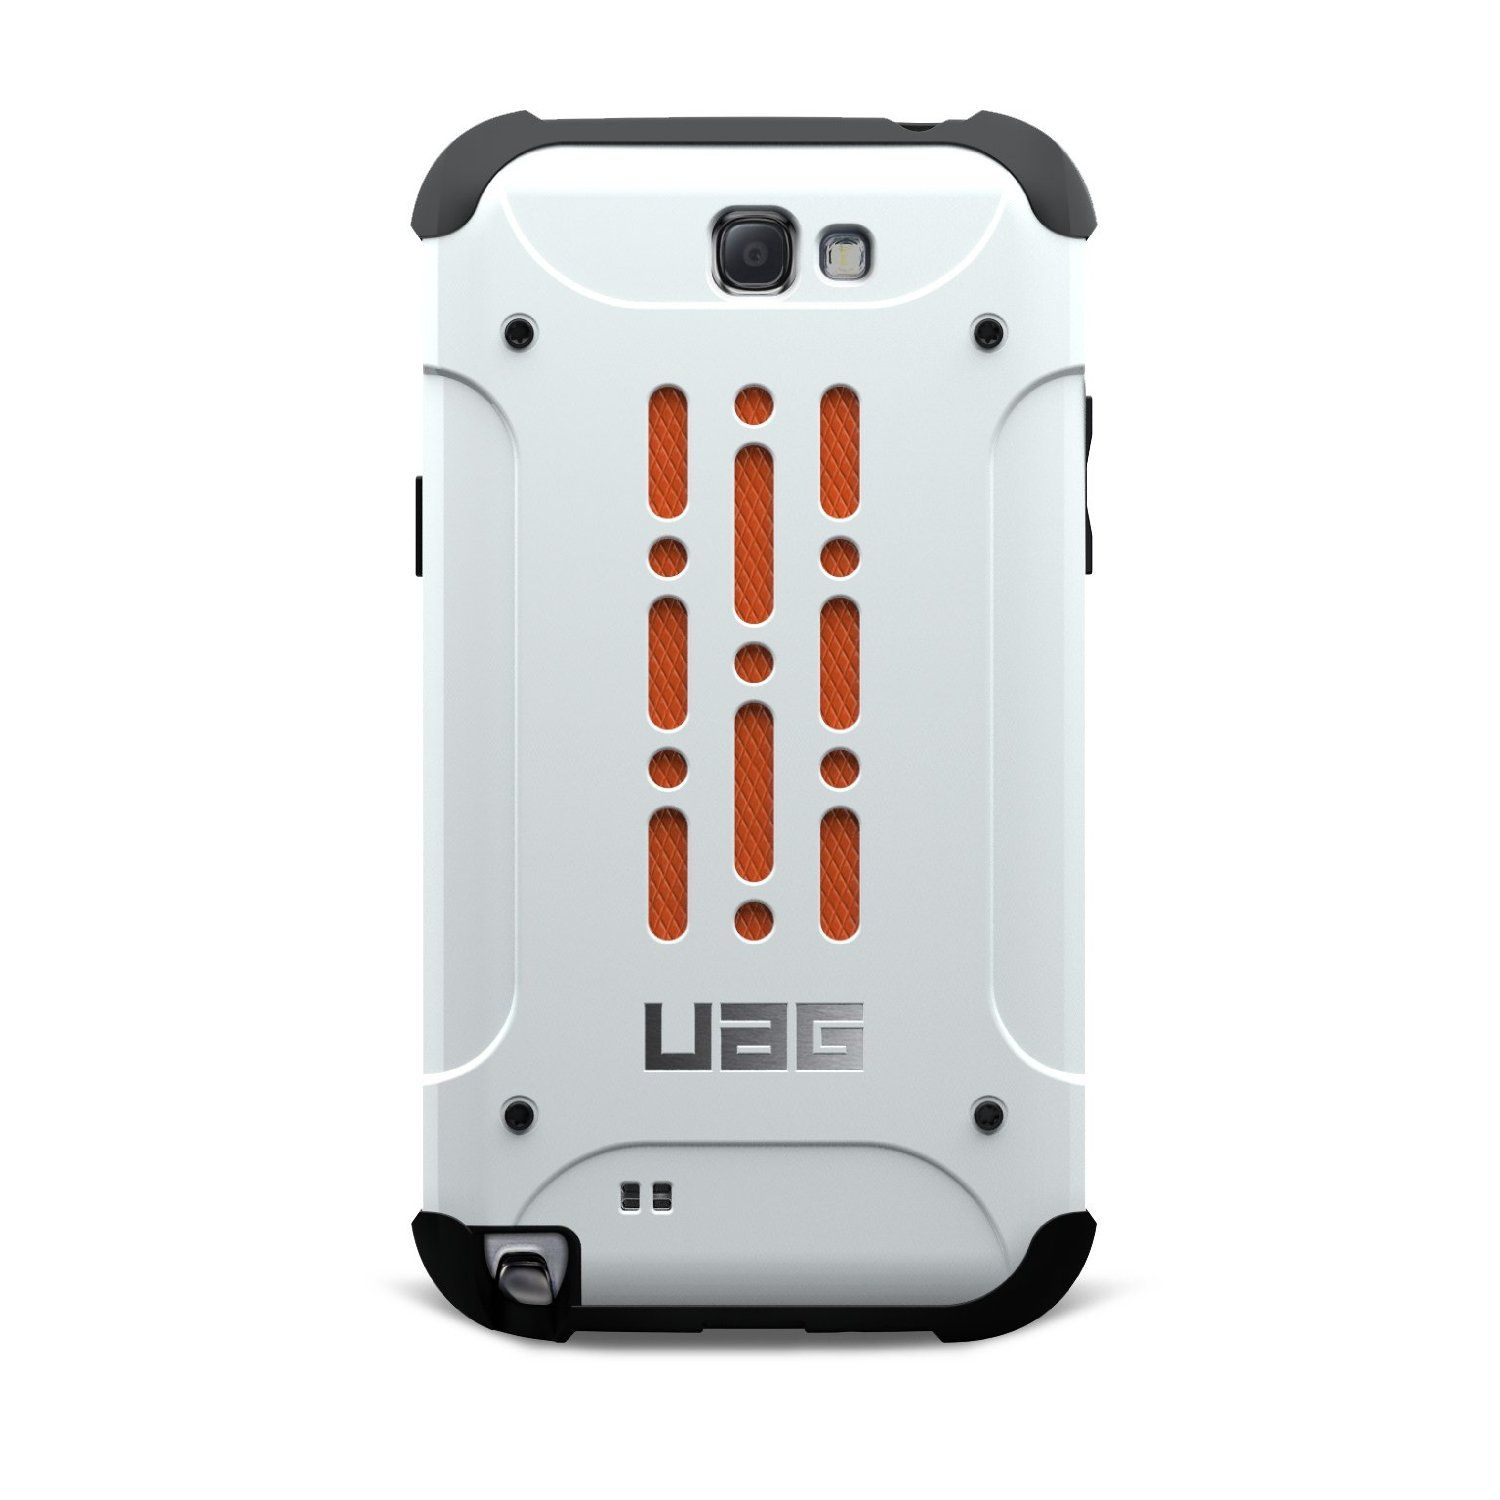 Galaxy s6 cases shop samsung cases online uag urban armor gear - Amazon Com Urban Armor Gear Case For Samsung Galaxy Note Ii White